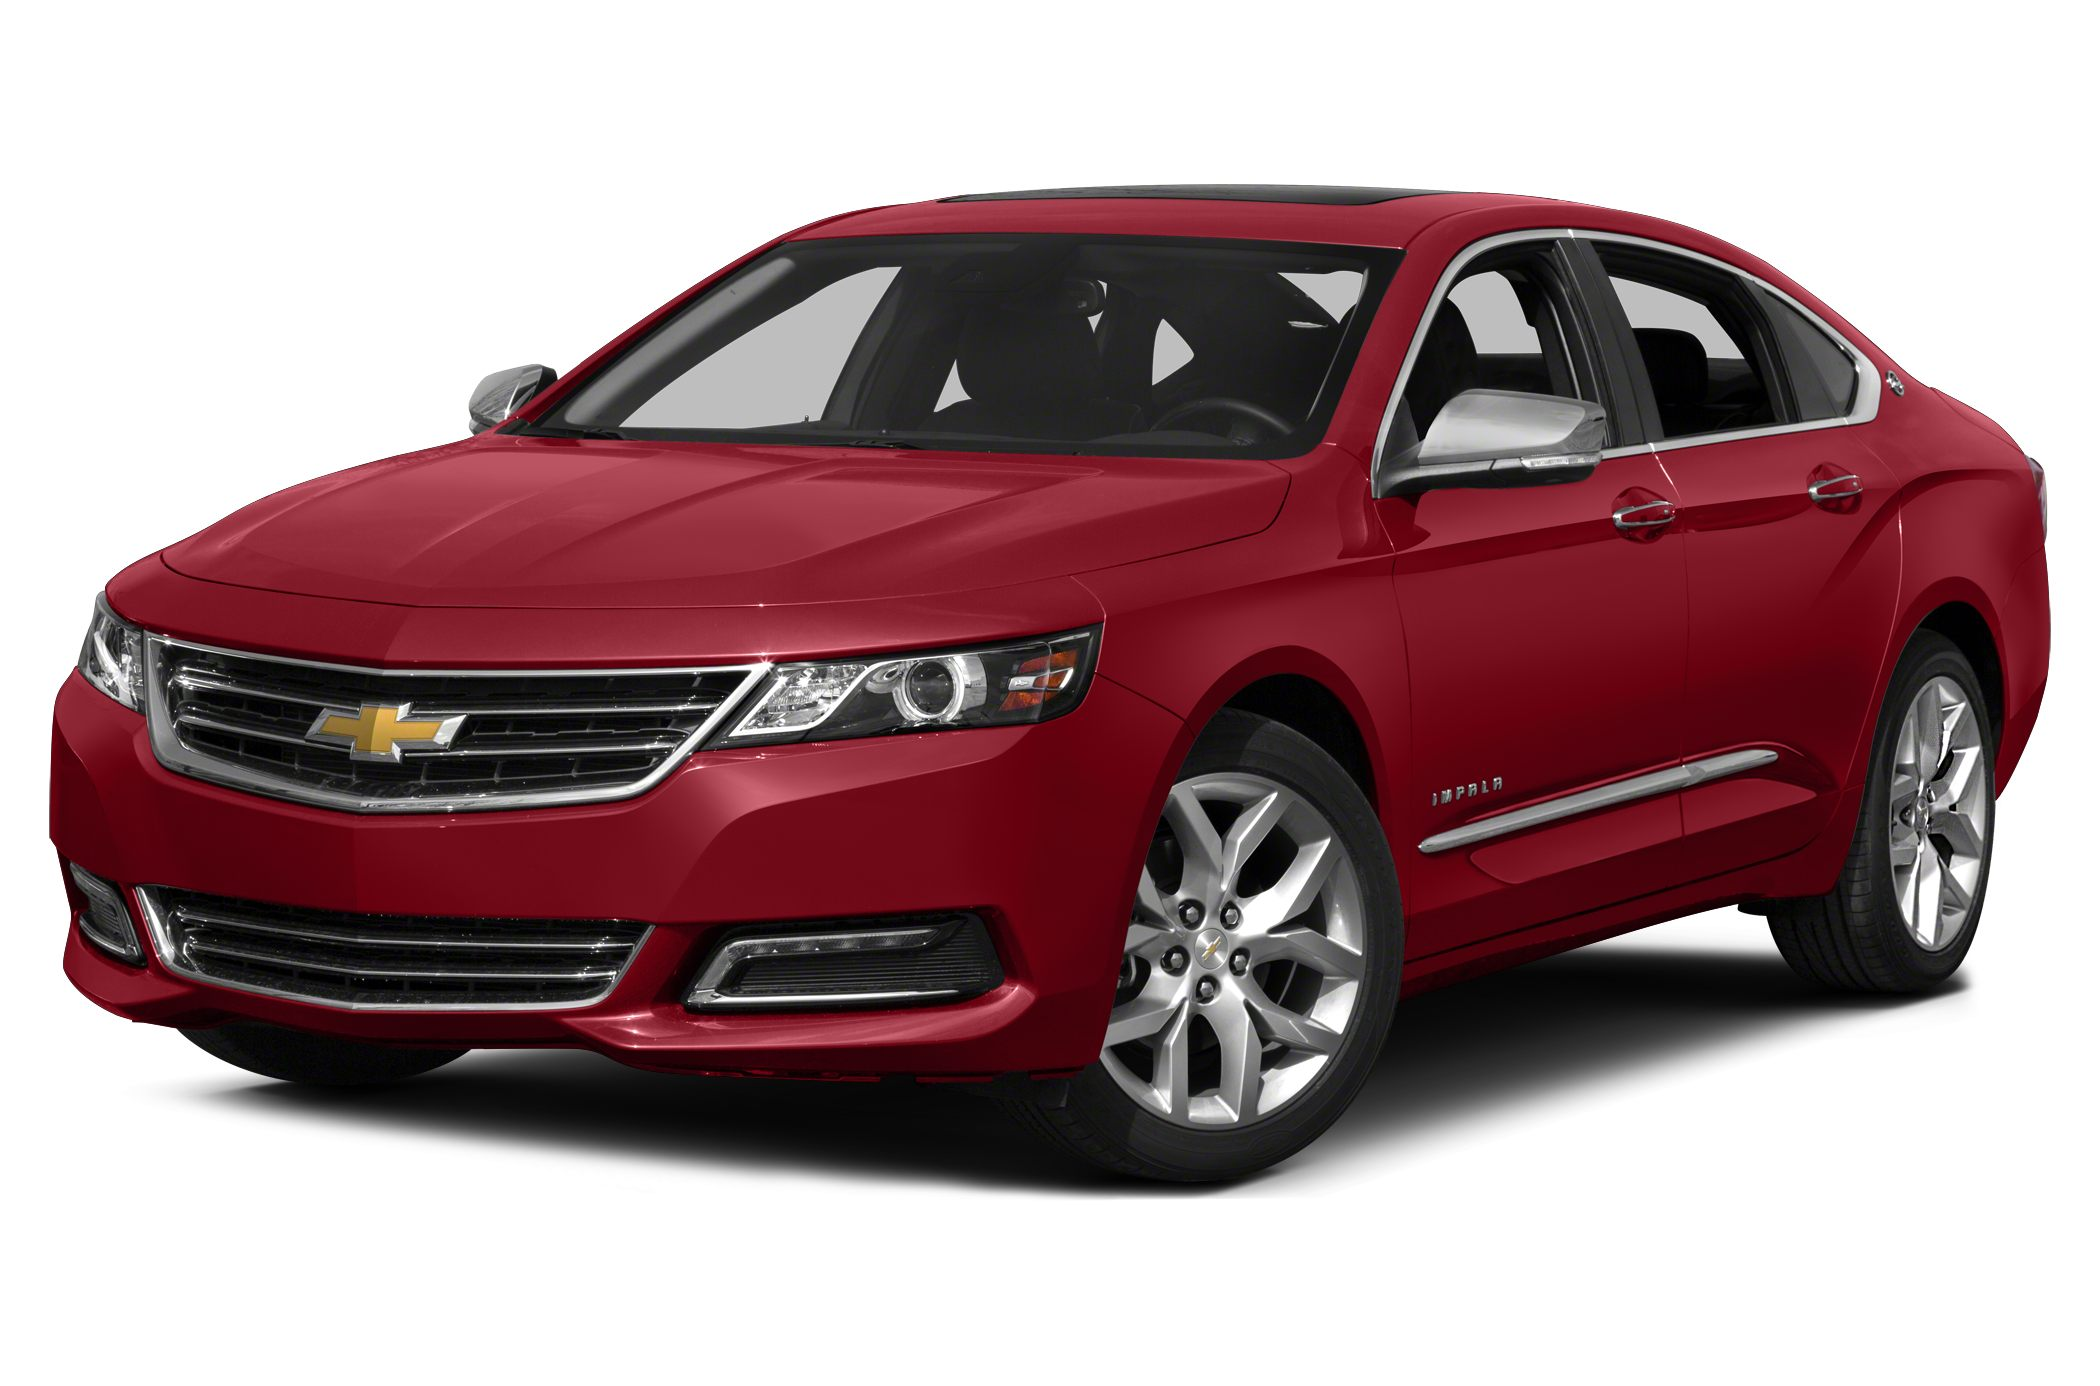 2015 Chevrolet Impala LS Sedan for sale in Westfield for $28,455 with 0 miles